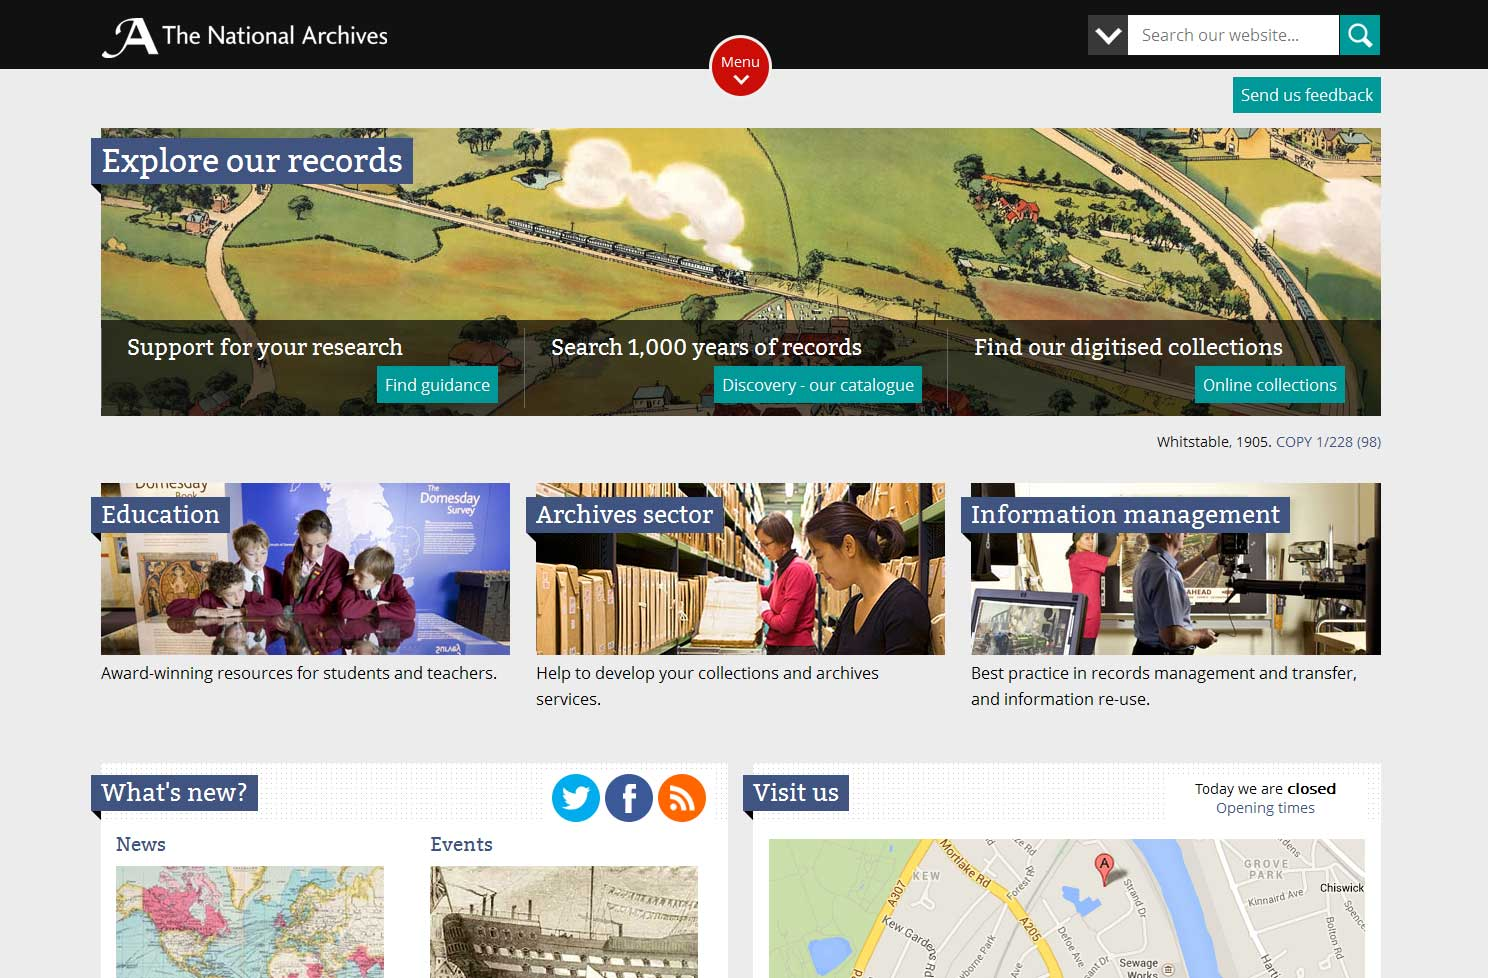 The National Archives' homepage